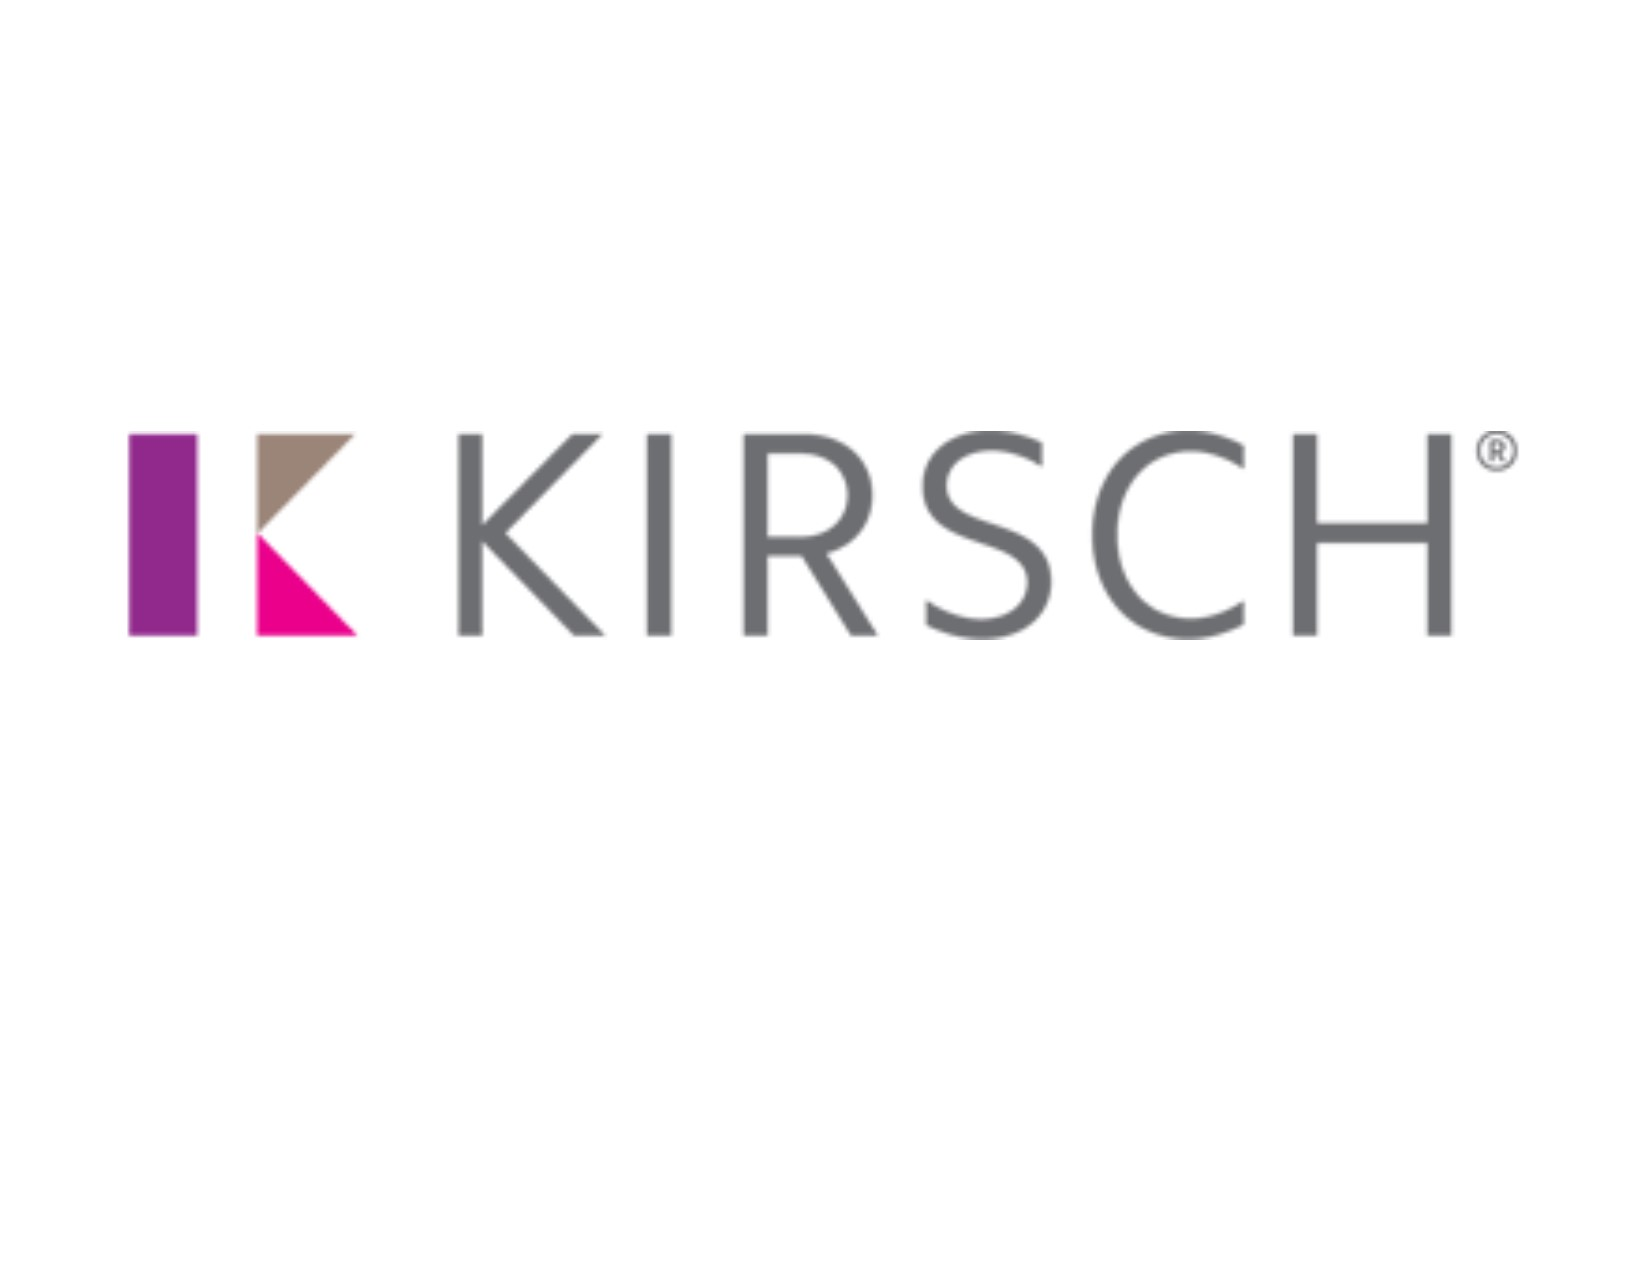 Kirsch Discontinued List 2018